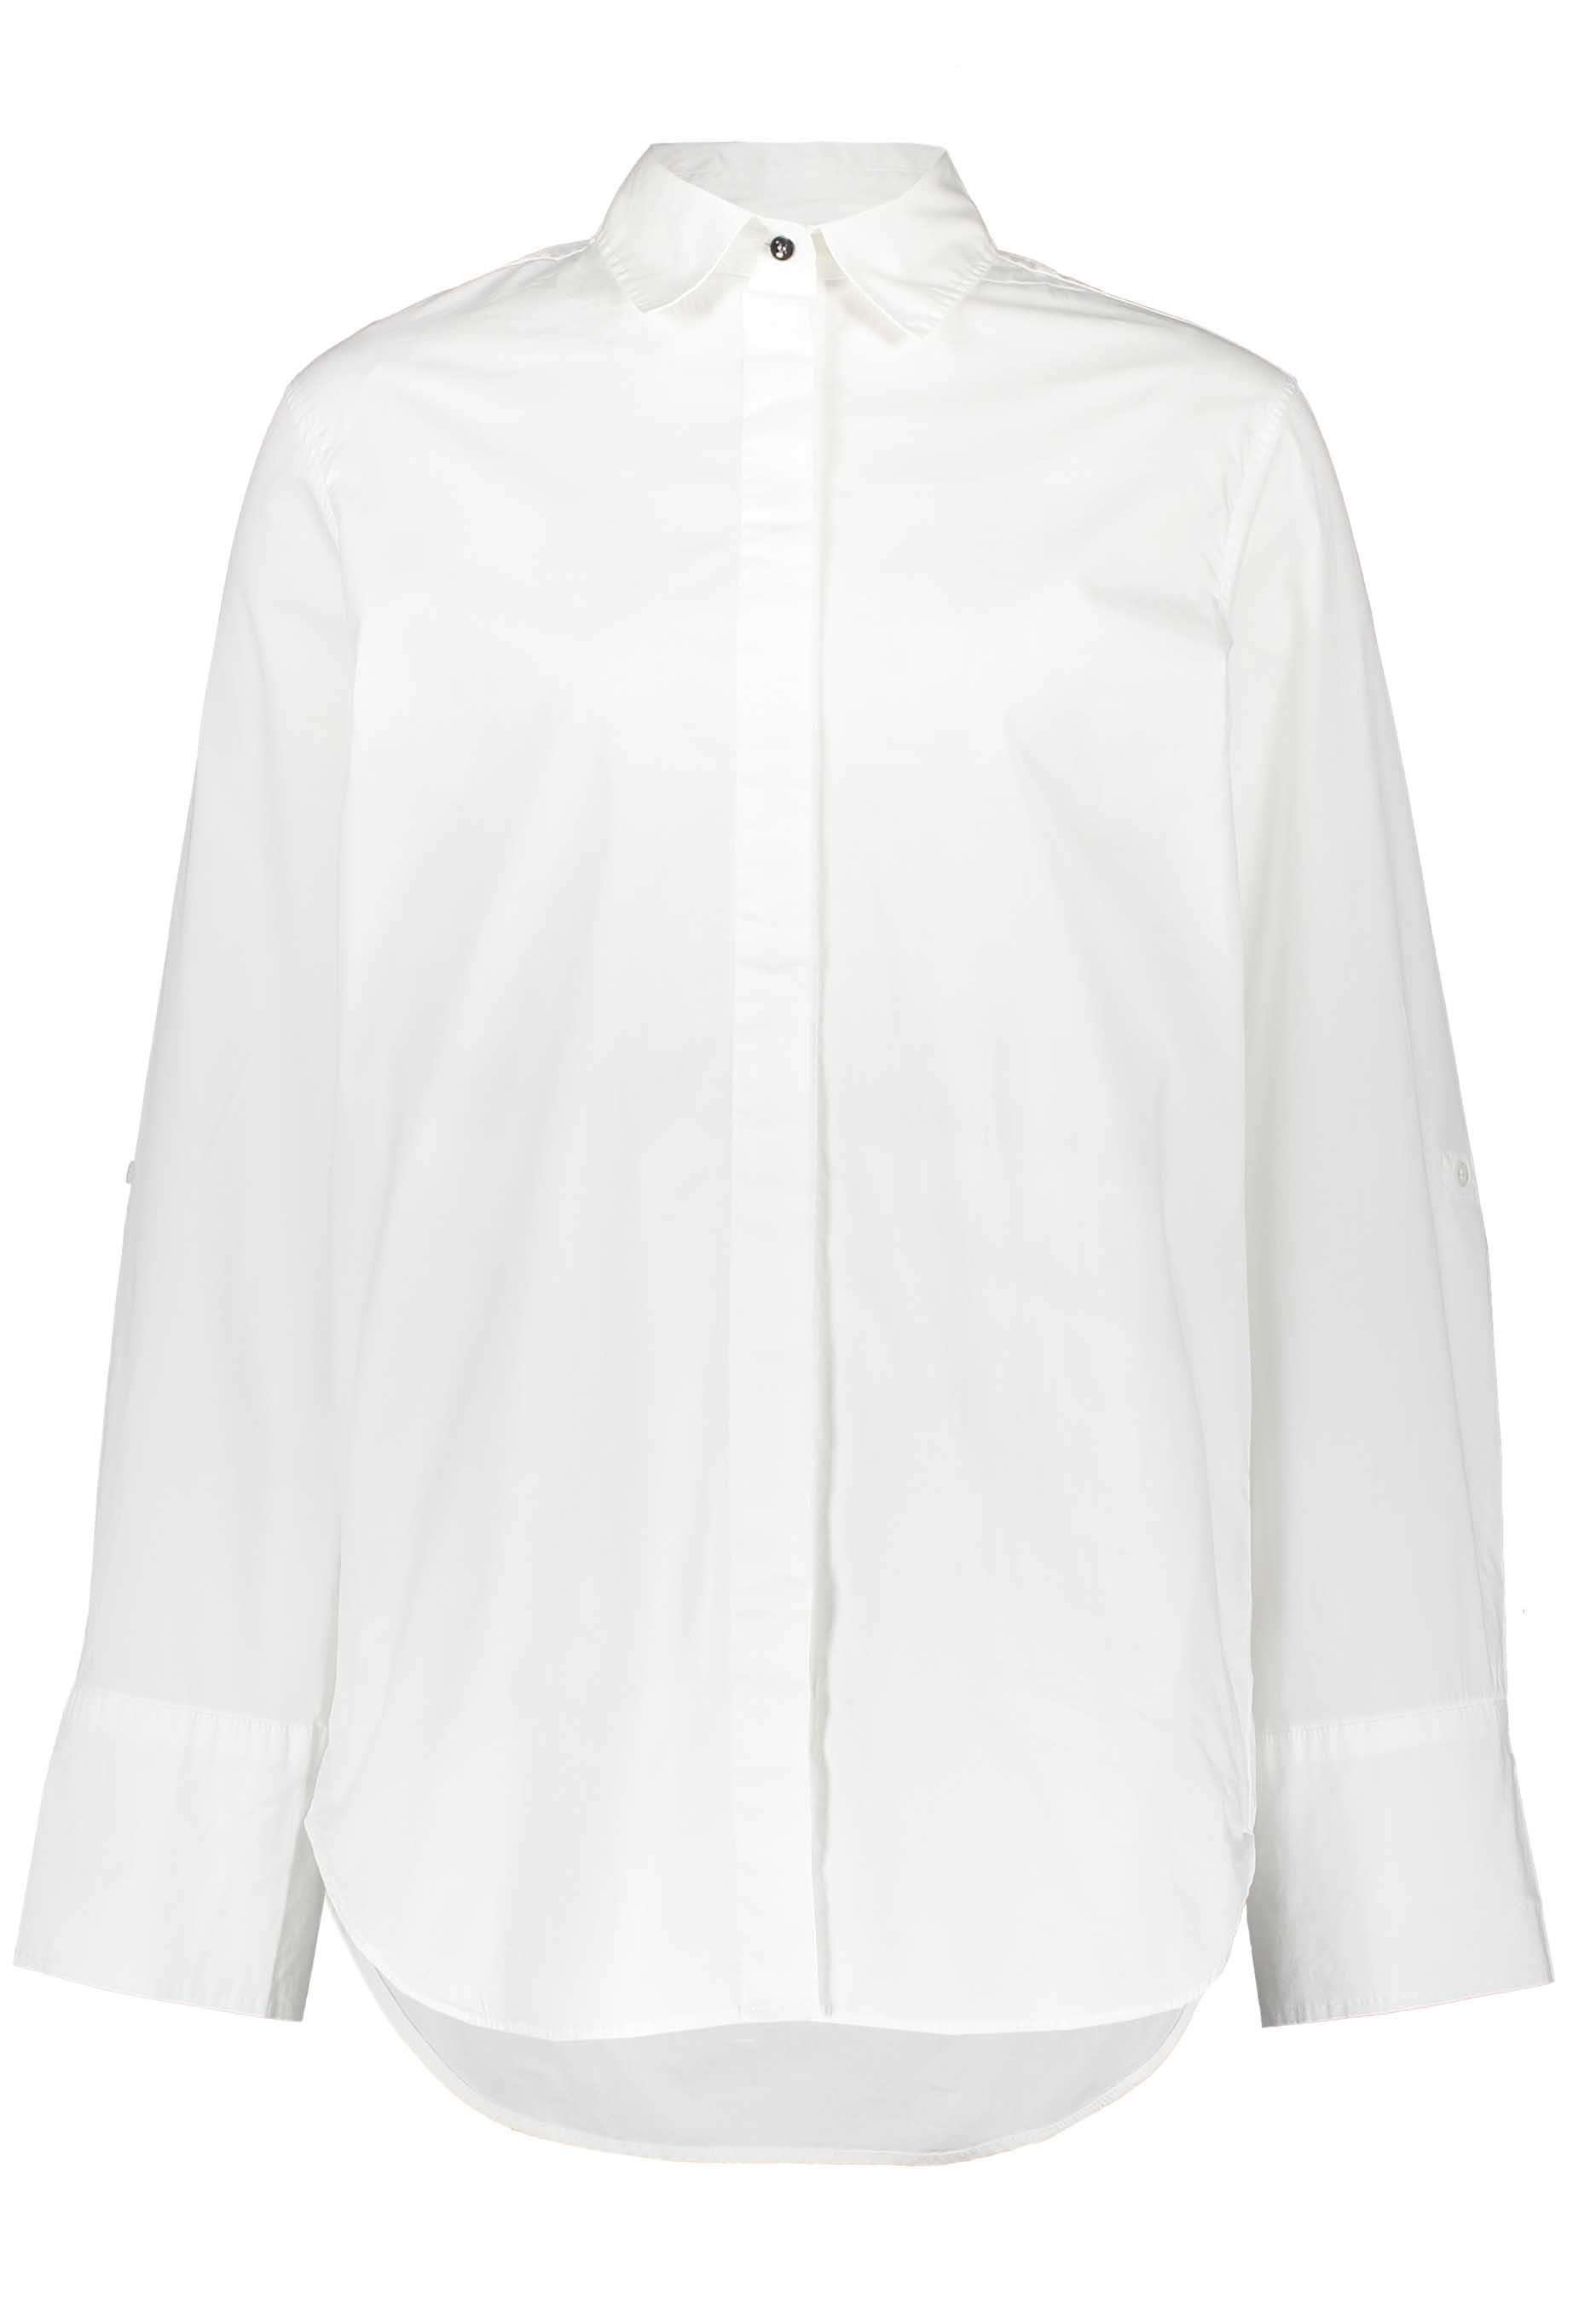 10DAYS Men's Shirt Blouse